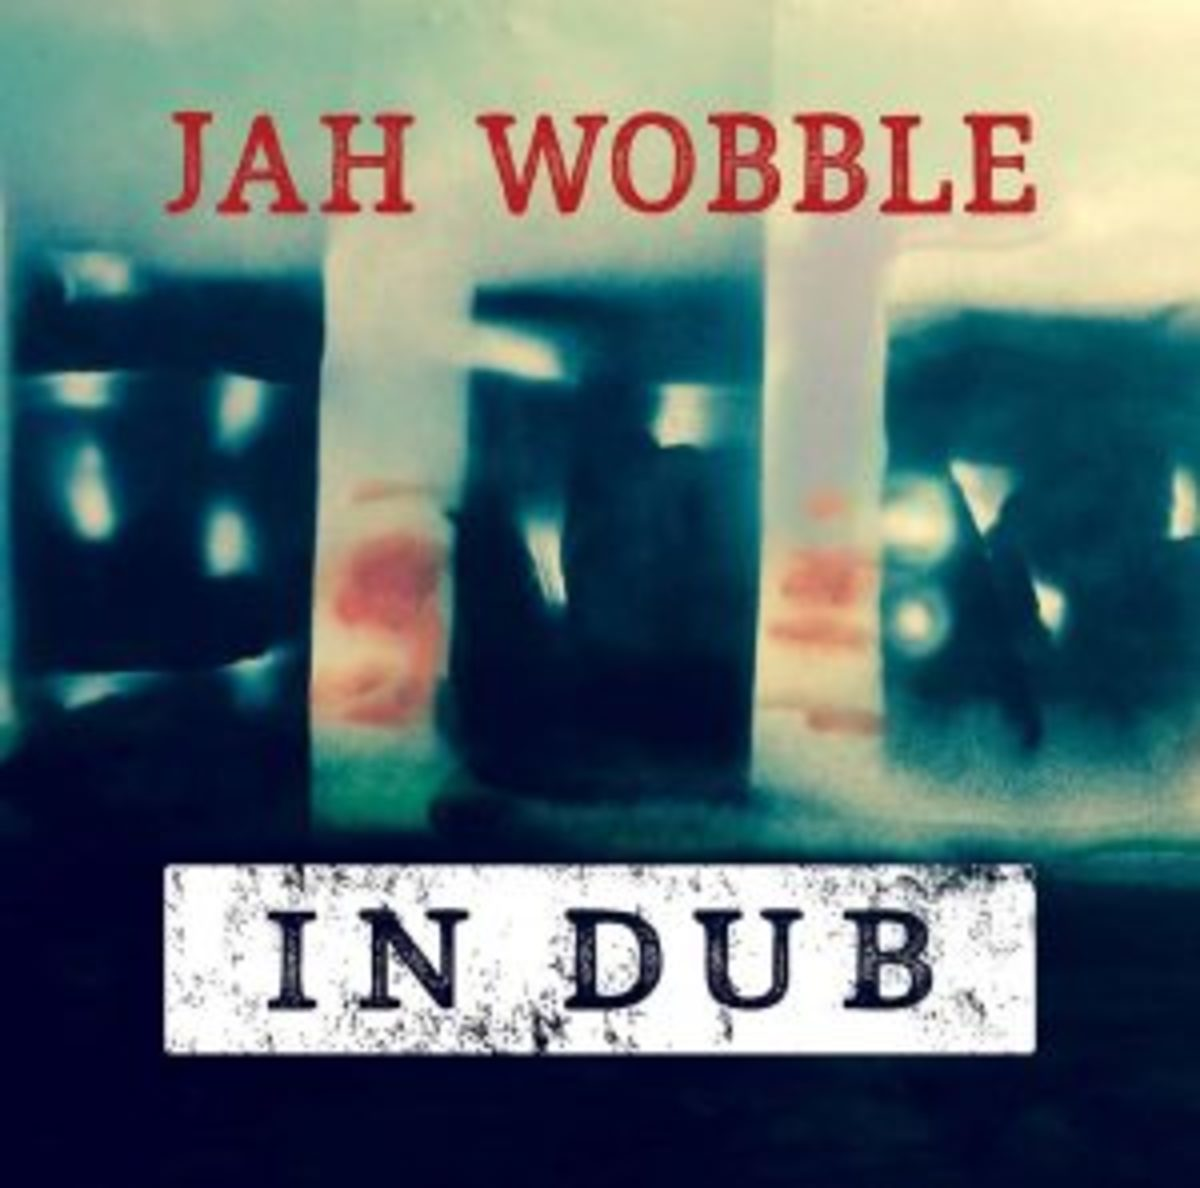 9 JAH-WOBBLE-Final-final